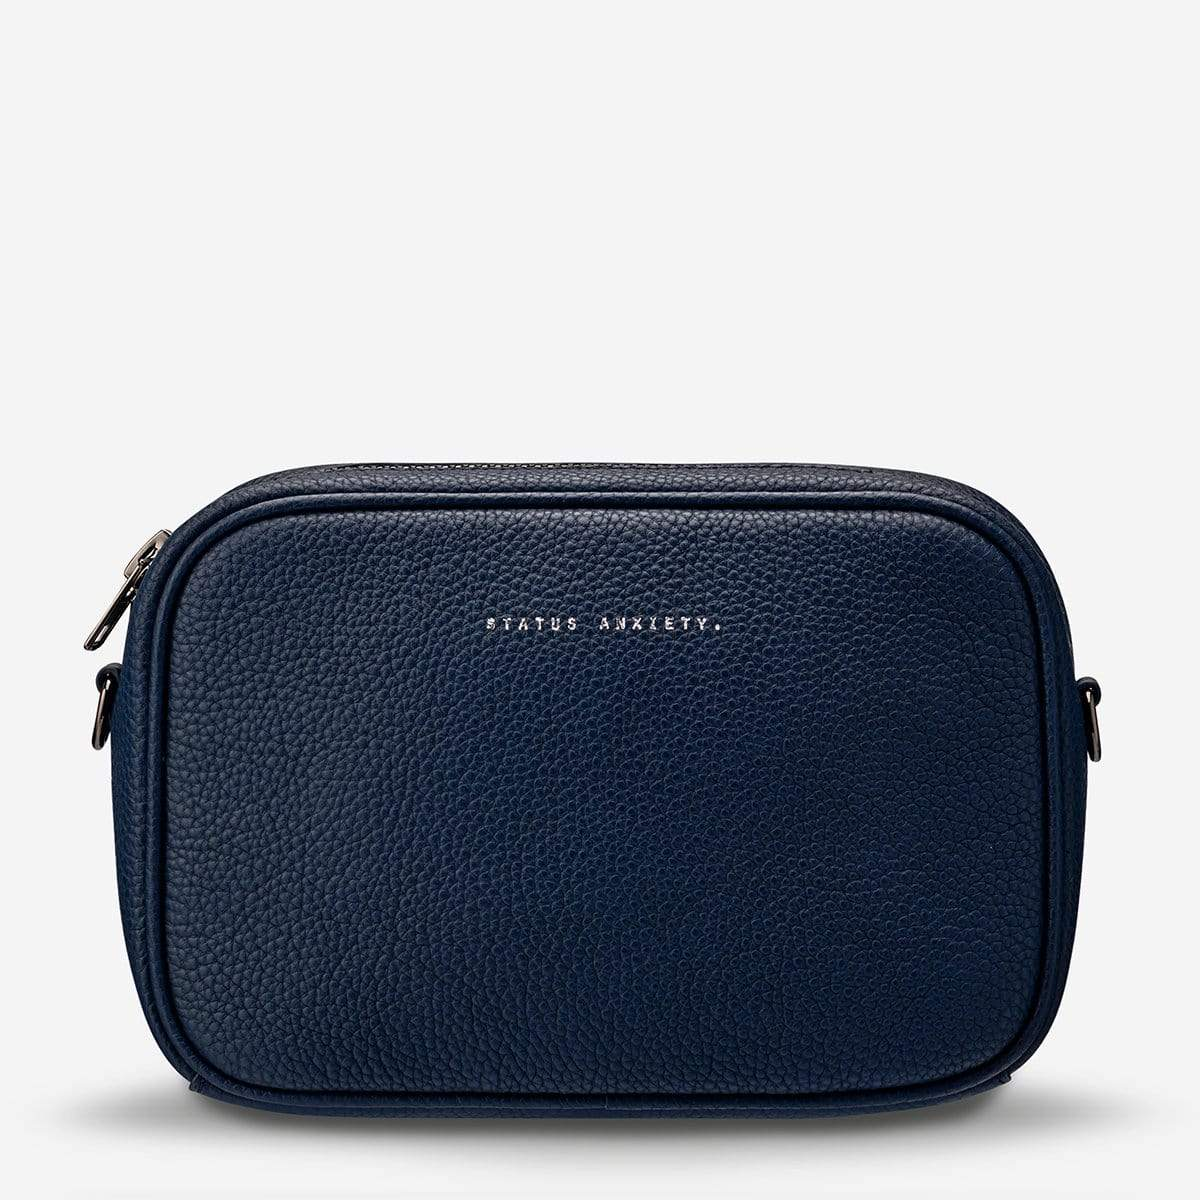 Status Anxiety Bags Status Anxiety | Plunder Bag - Navy Blue